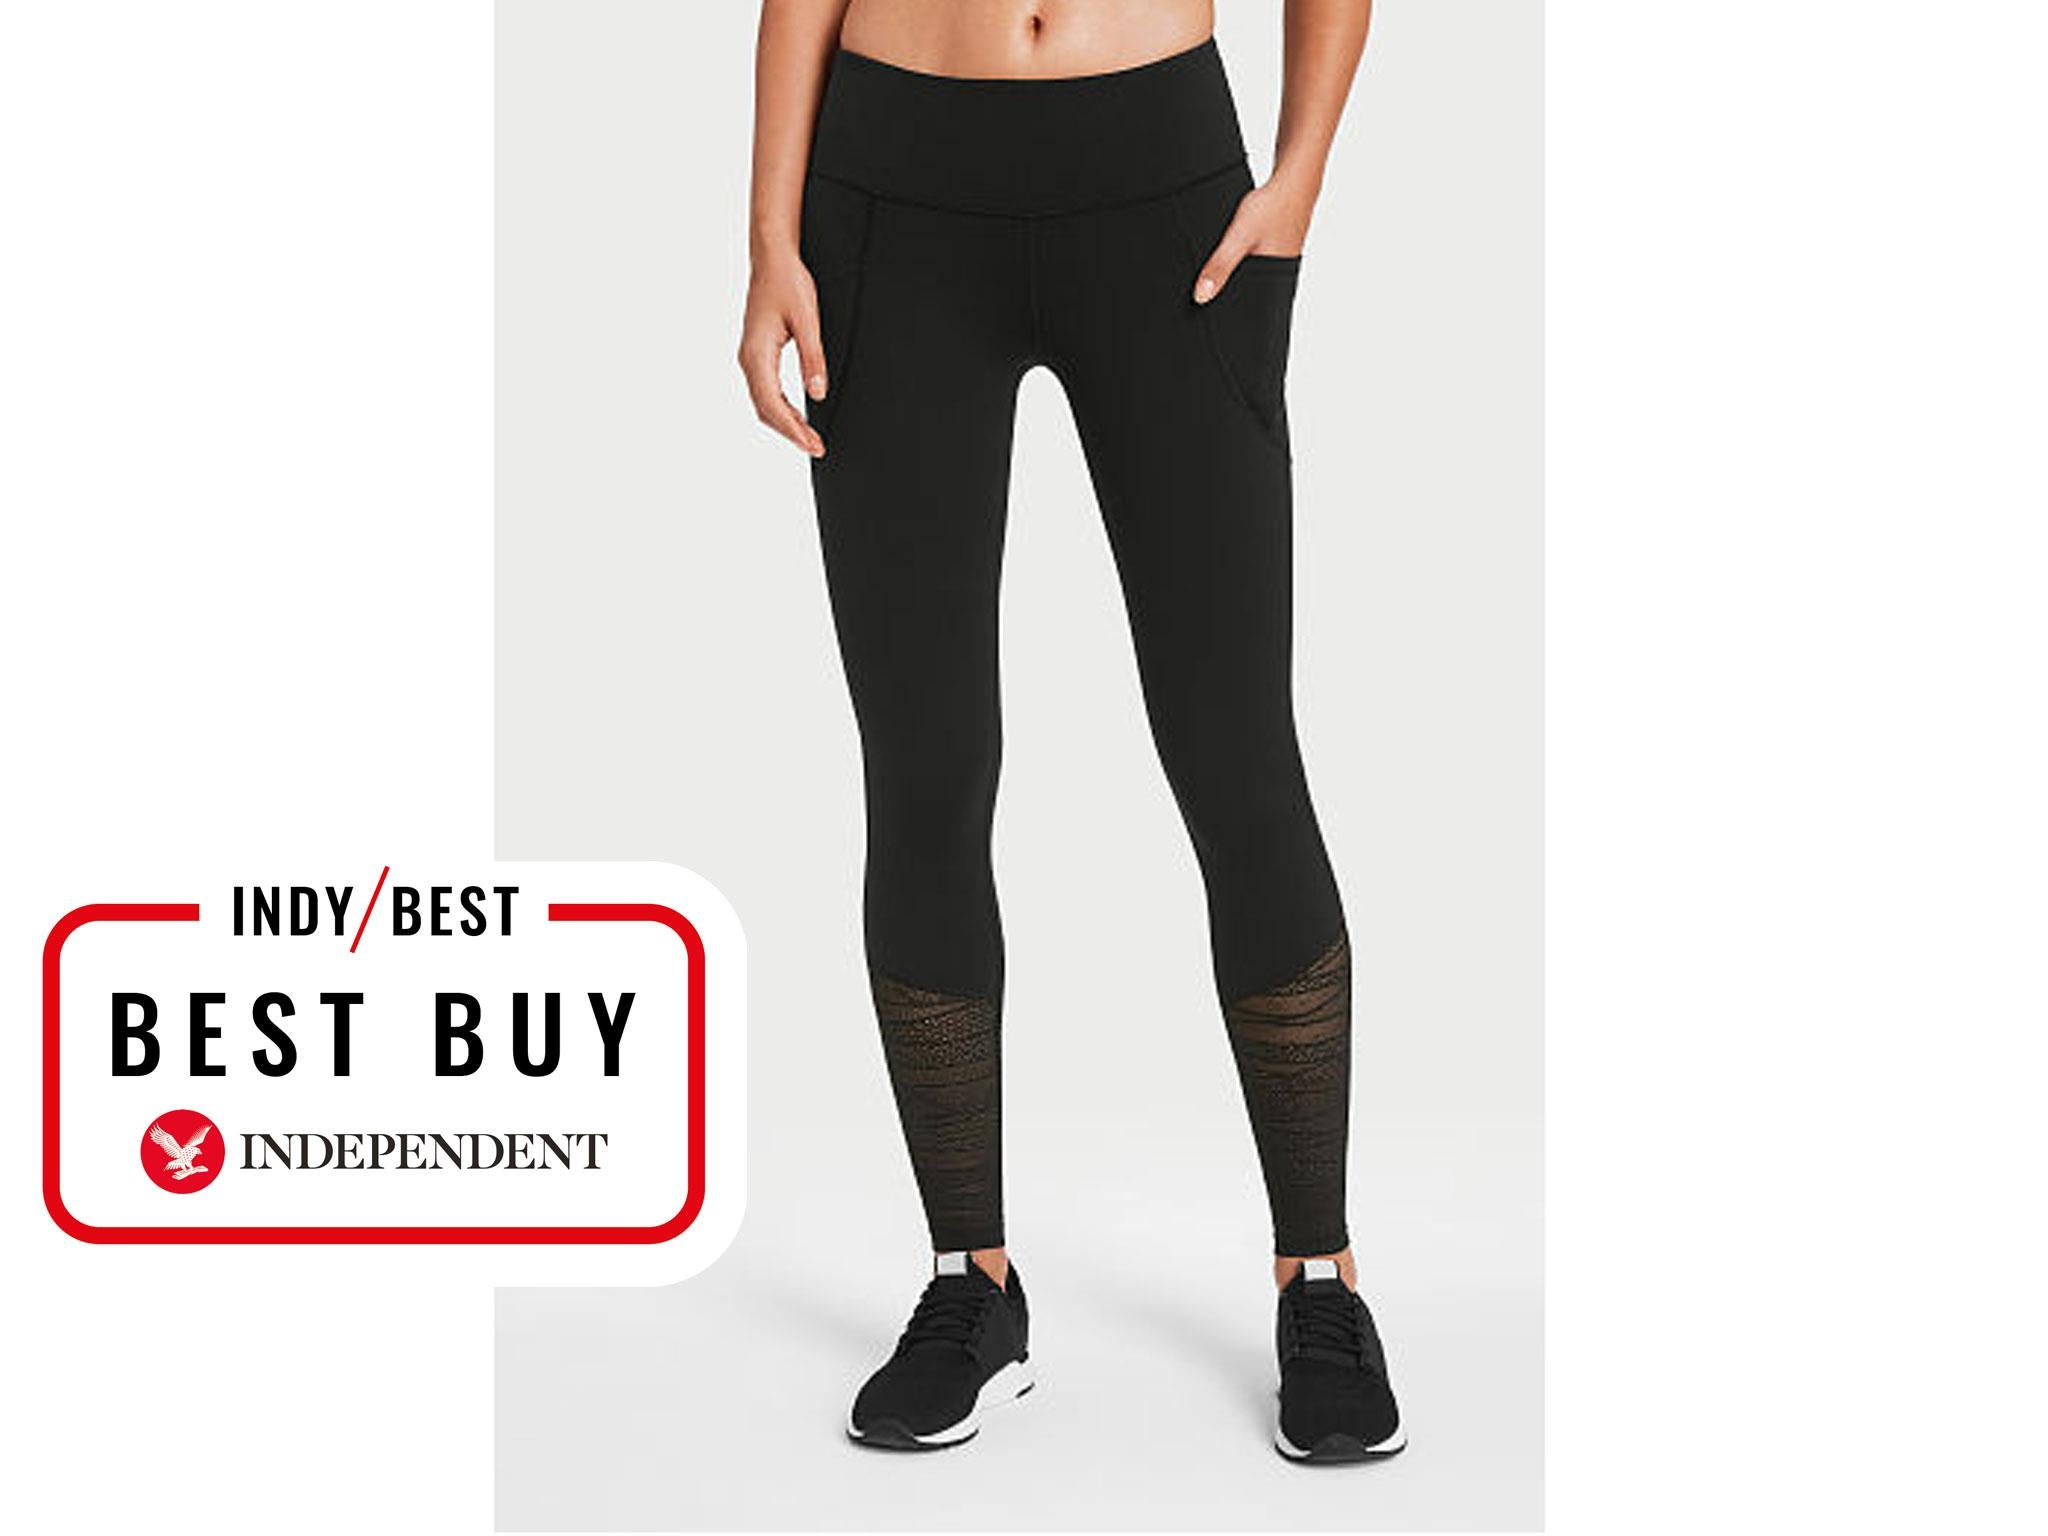 d35c3b59f0 Victoria's Secret Knockout Leggings: £68.43, Victoria's Secret. These gym  leggings ...